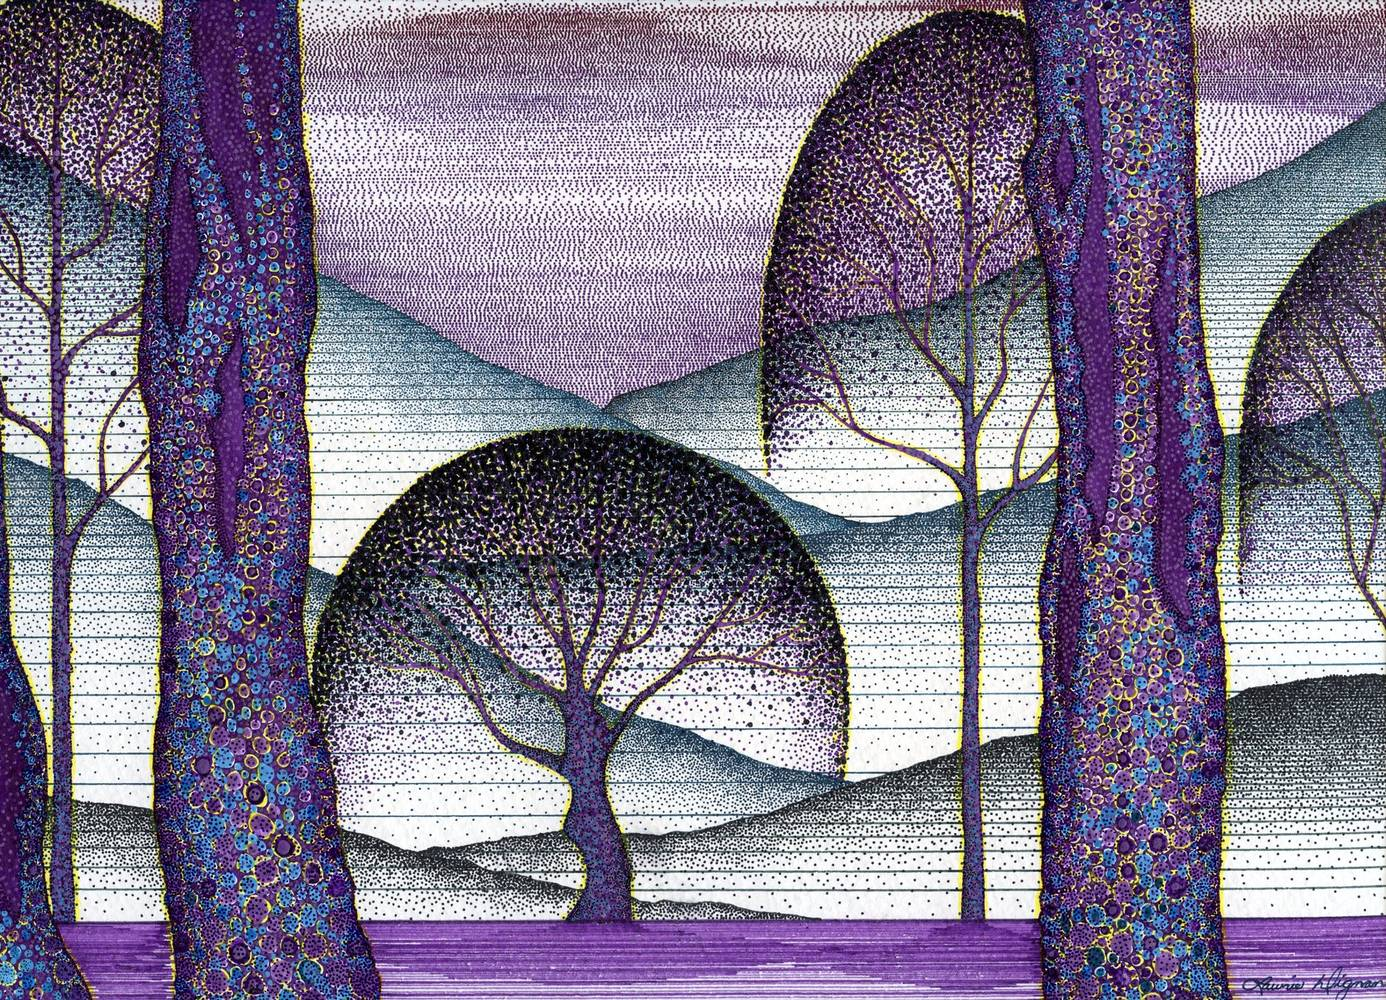 Drawing Amythest Forest  by Lawrie  Dignan